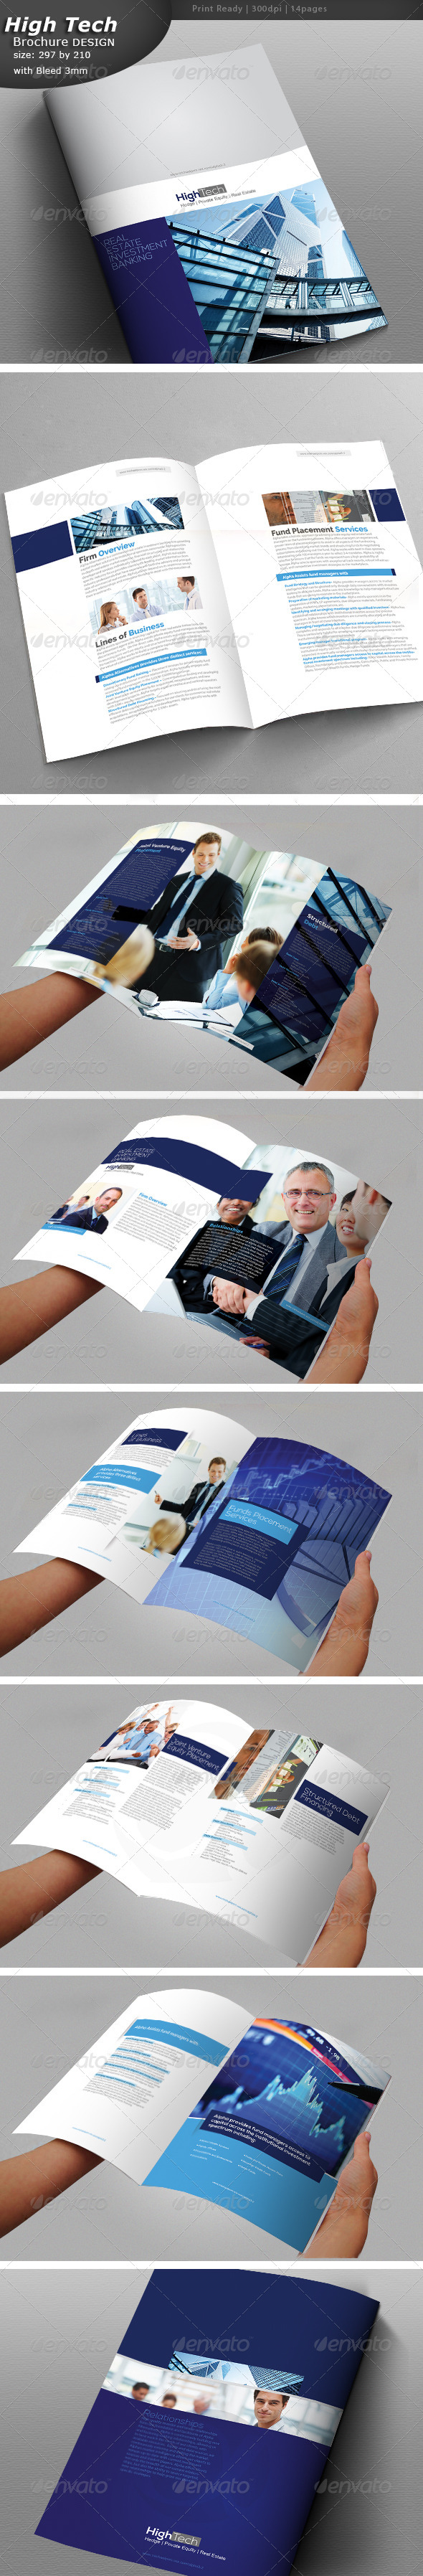 Corporate Brochure Design  - Brochures Print Templates